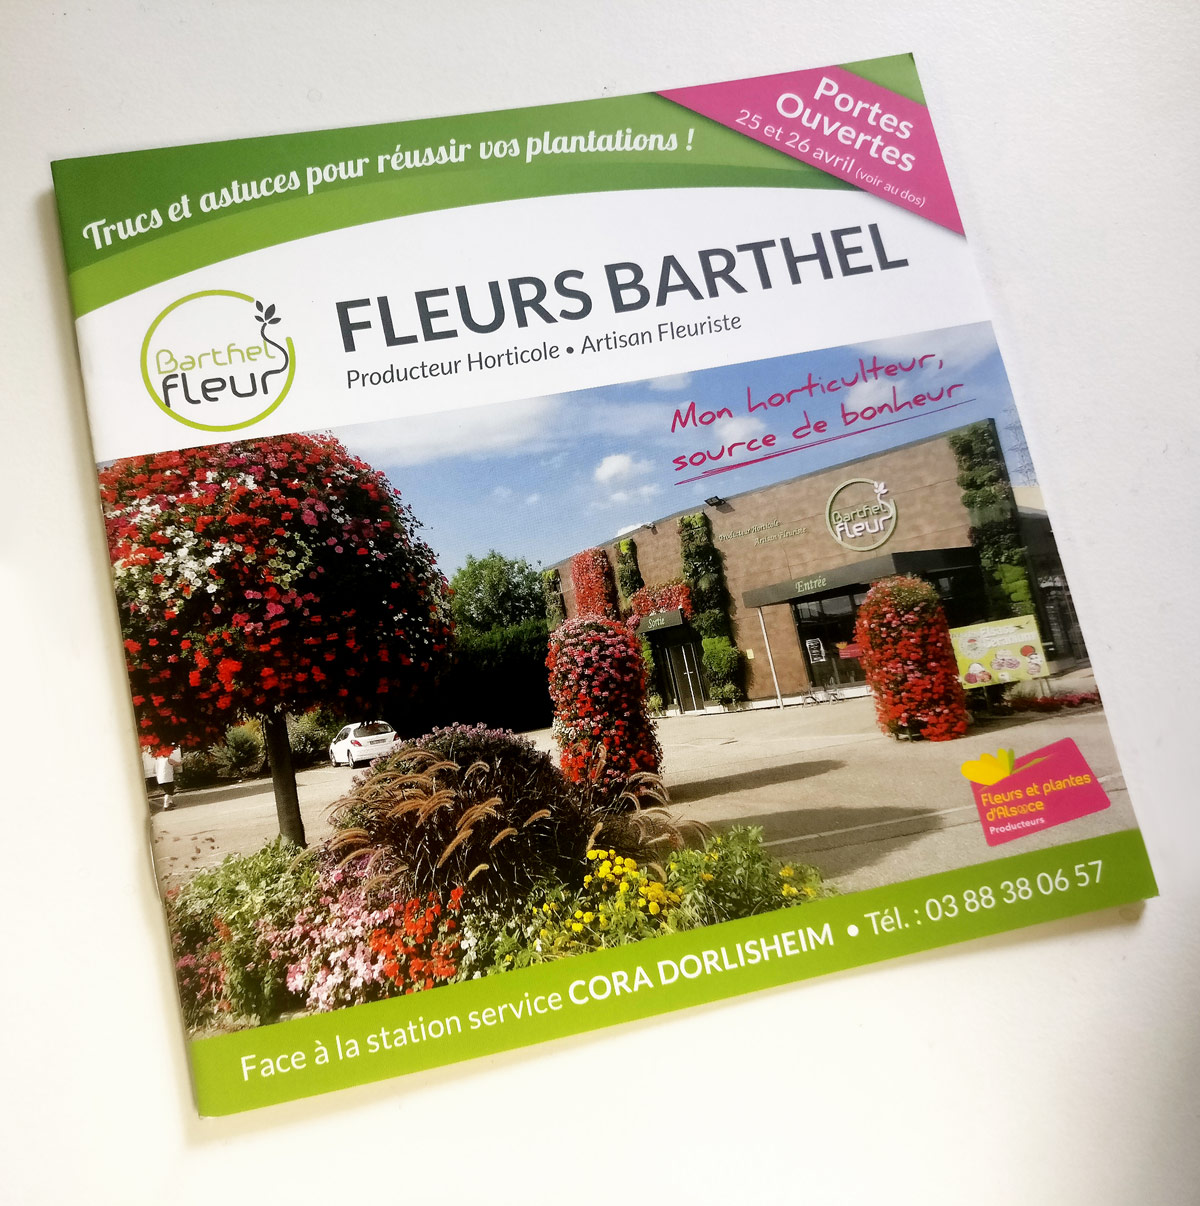 Barthel fleurs site internet supports de communication for Vente de fleurs sur internet